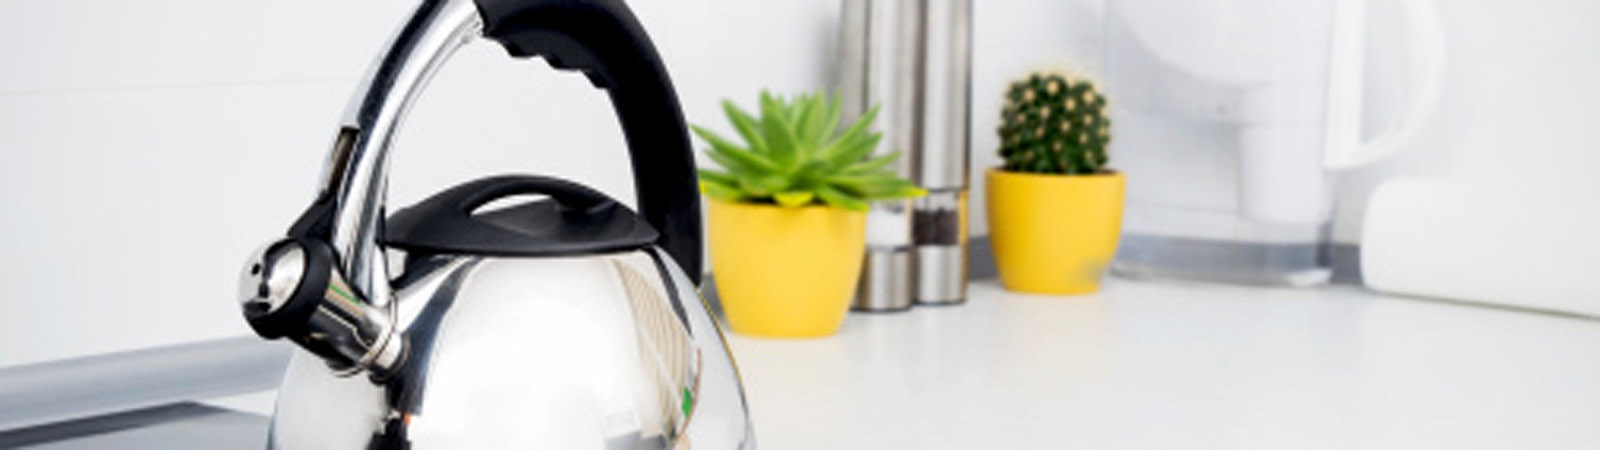 Kettle in the kitchen